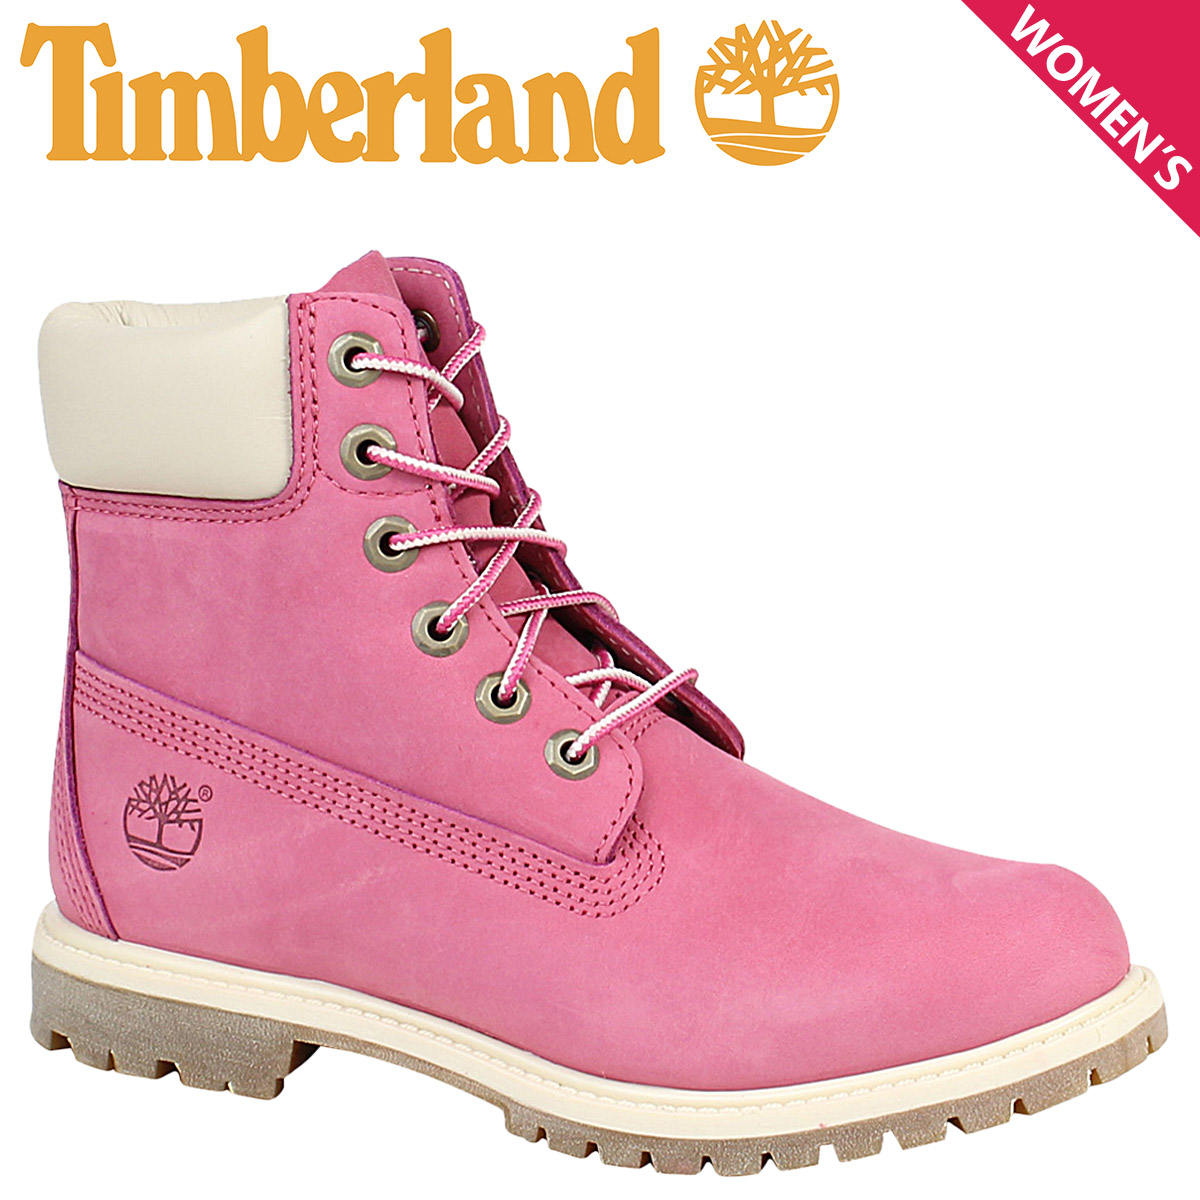 b1cd16ac103c Women s Timberland Timberland 6 INCHI 6 inch premium boots WOMENS 6-INCH  PREMIUM WATERPROOF BOOTS A19D8 W wise waterproof canvas